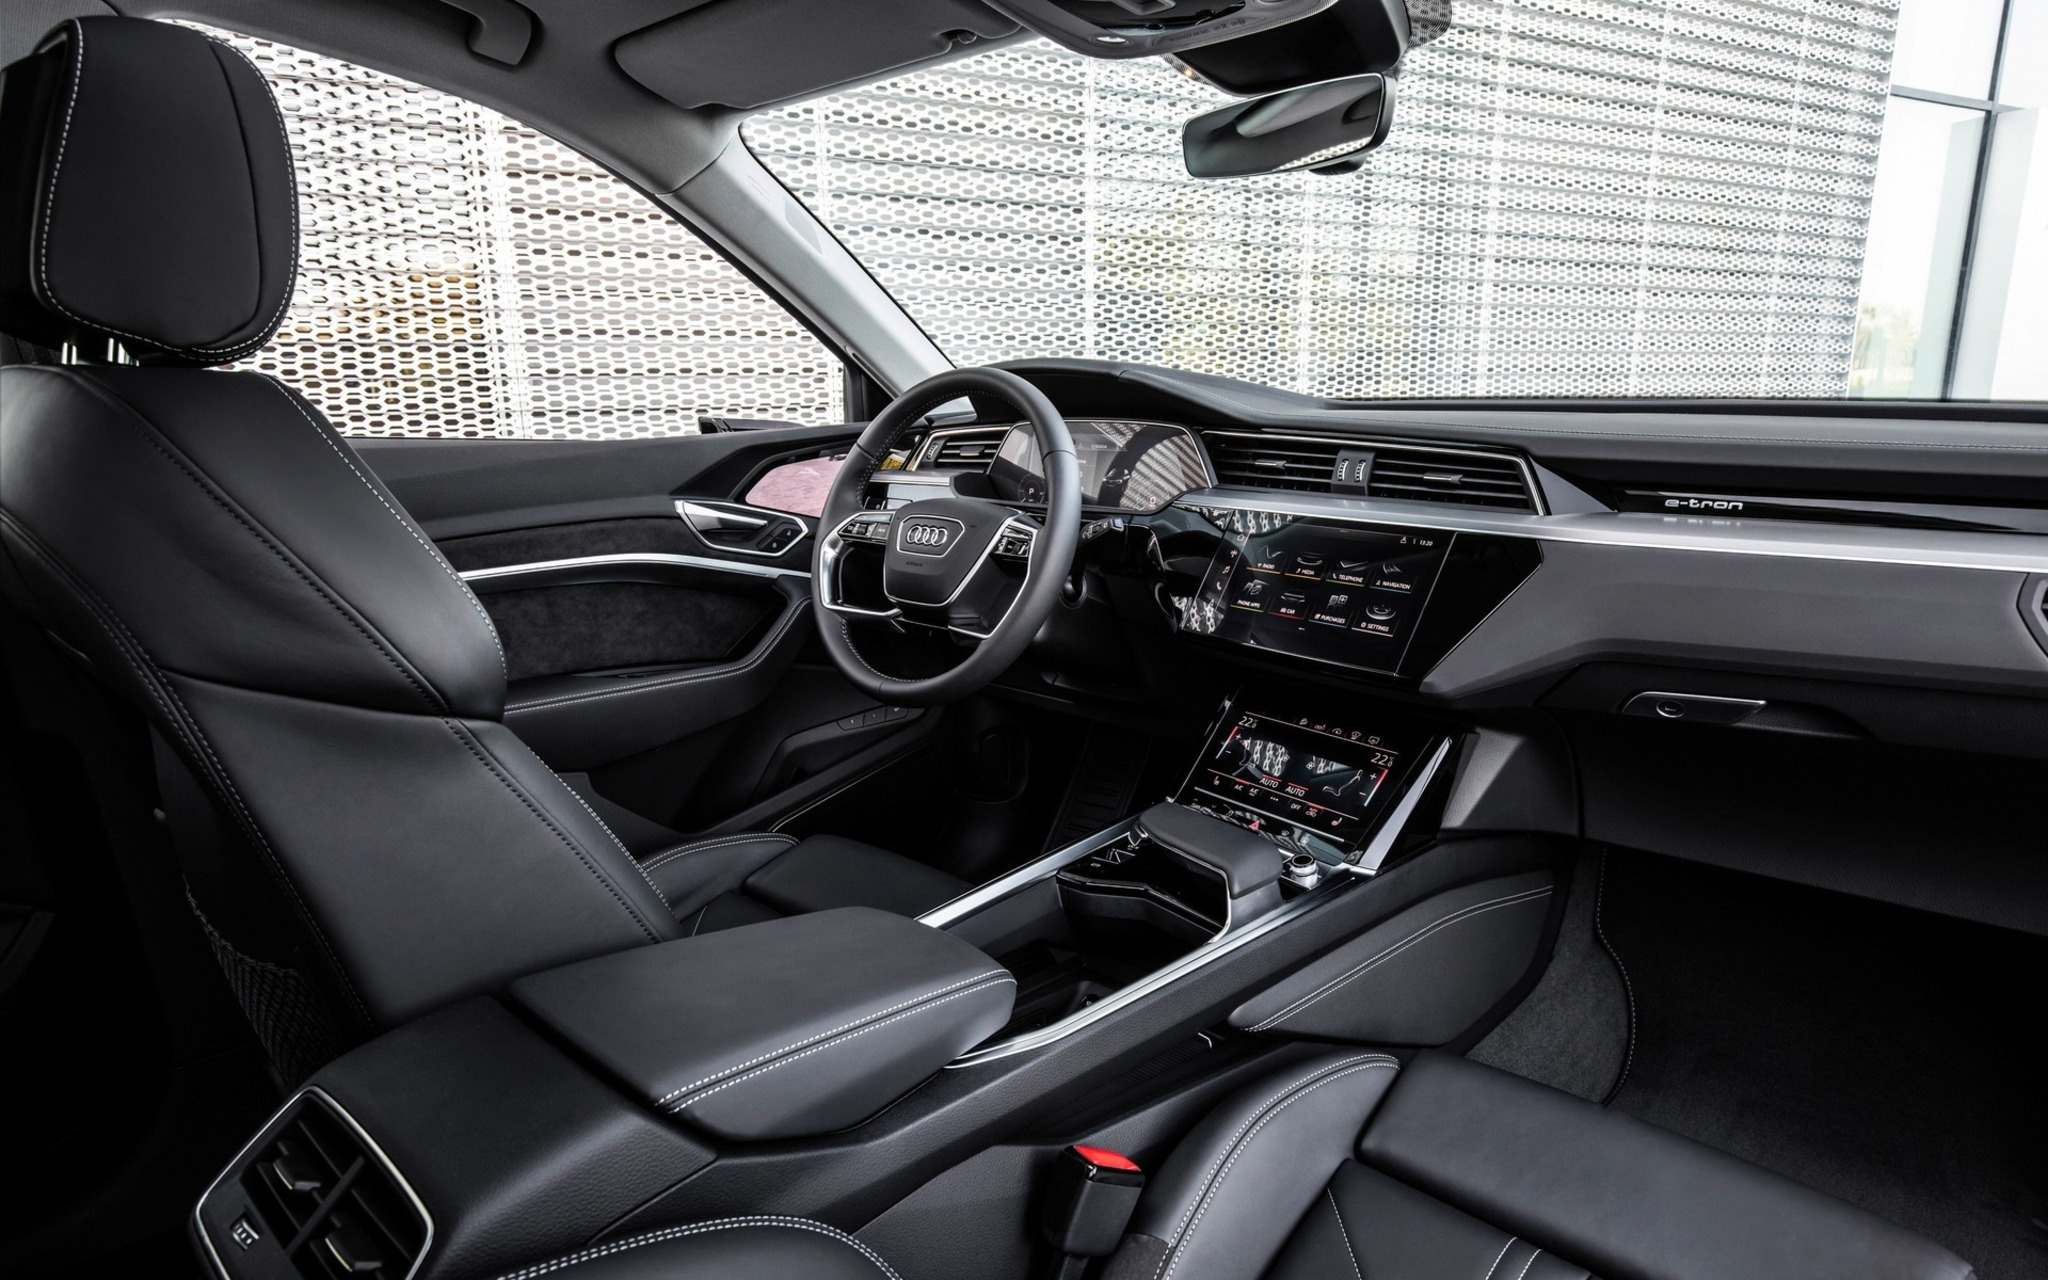 The interior offers up to 1,755 litres of cargo space and five high-tech colour touchscreens.